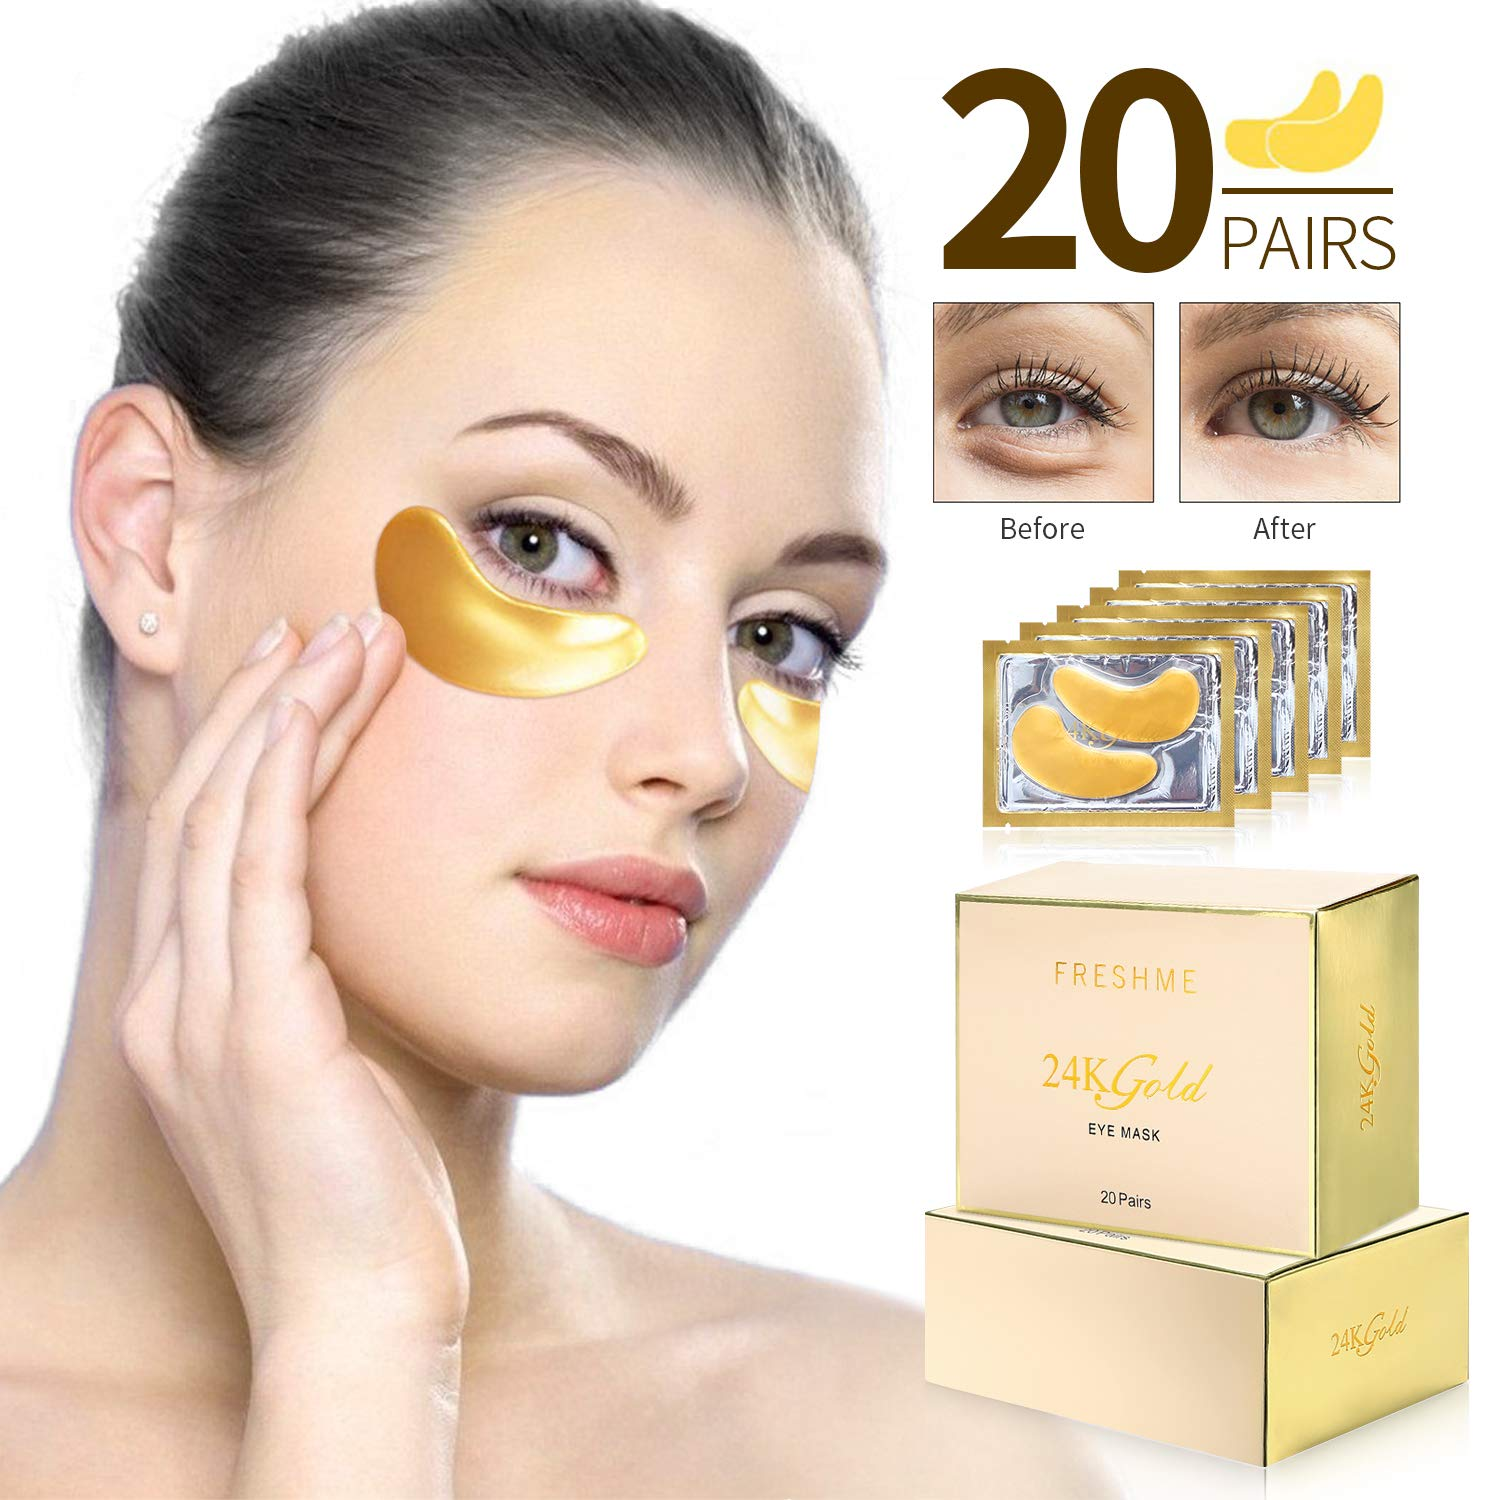 FRESHME Under Eye Mask - 20 Pairs Nano Gold Eye Pads Hyaluronan Eye Patches Treatment Masks with Rosa Rugosa Oil for Moisturizing Reducing Dark Circles Puffiness Wrinkles Gel Pad for Women & Men by FRESHME